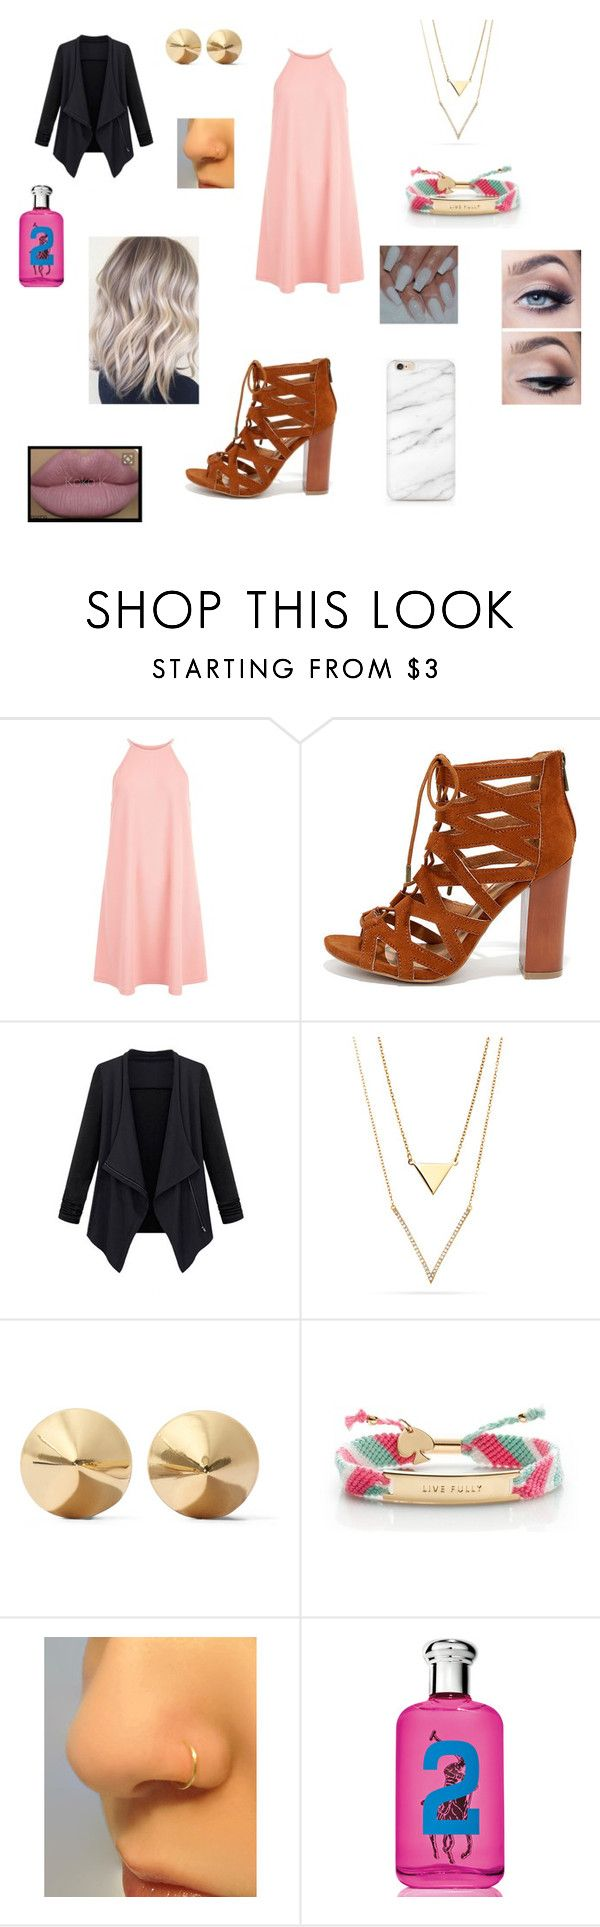 Untitled #229 by katrine-frid on Polyvore featuring New Look, Bamboo, Kate Spade, Eddie Borgo and Ralph Lauren